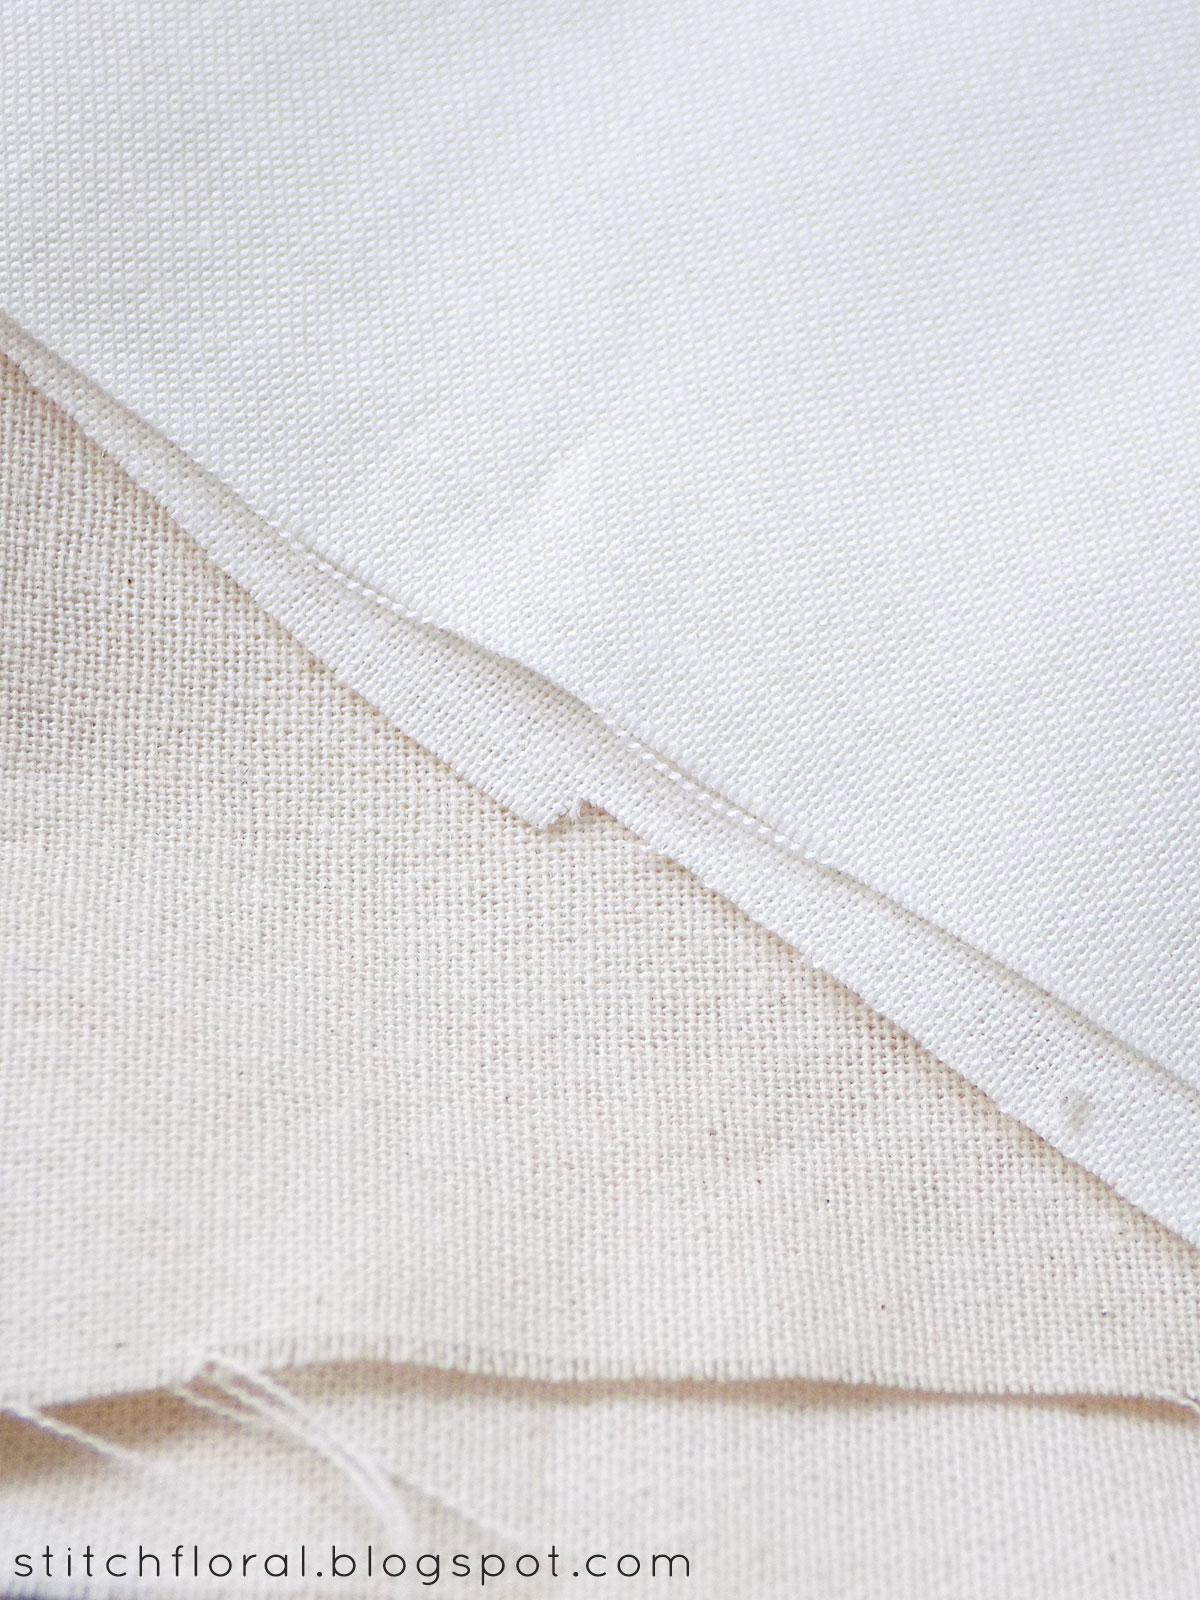 What you need to know about hand embroidery fabric